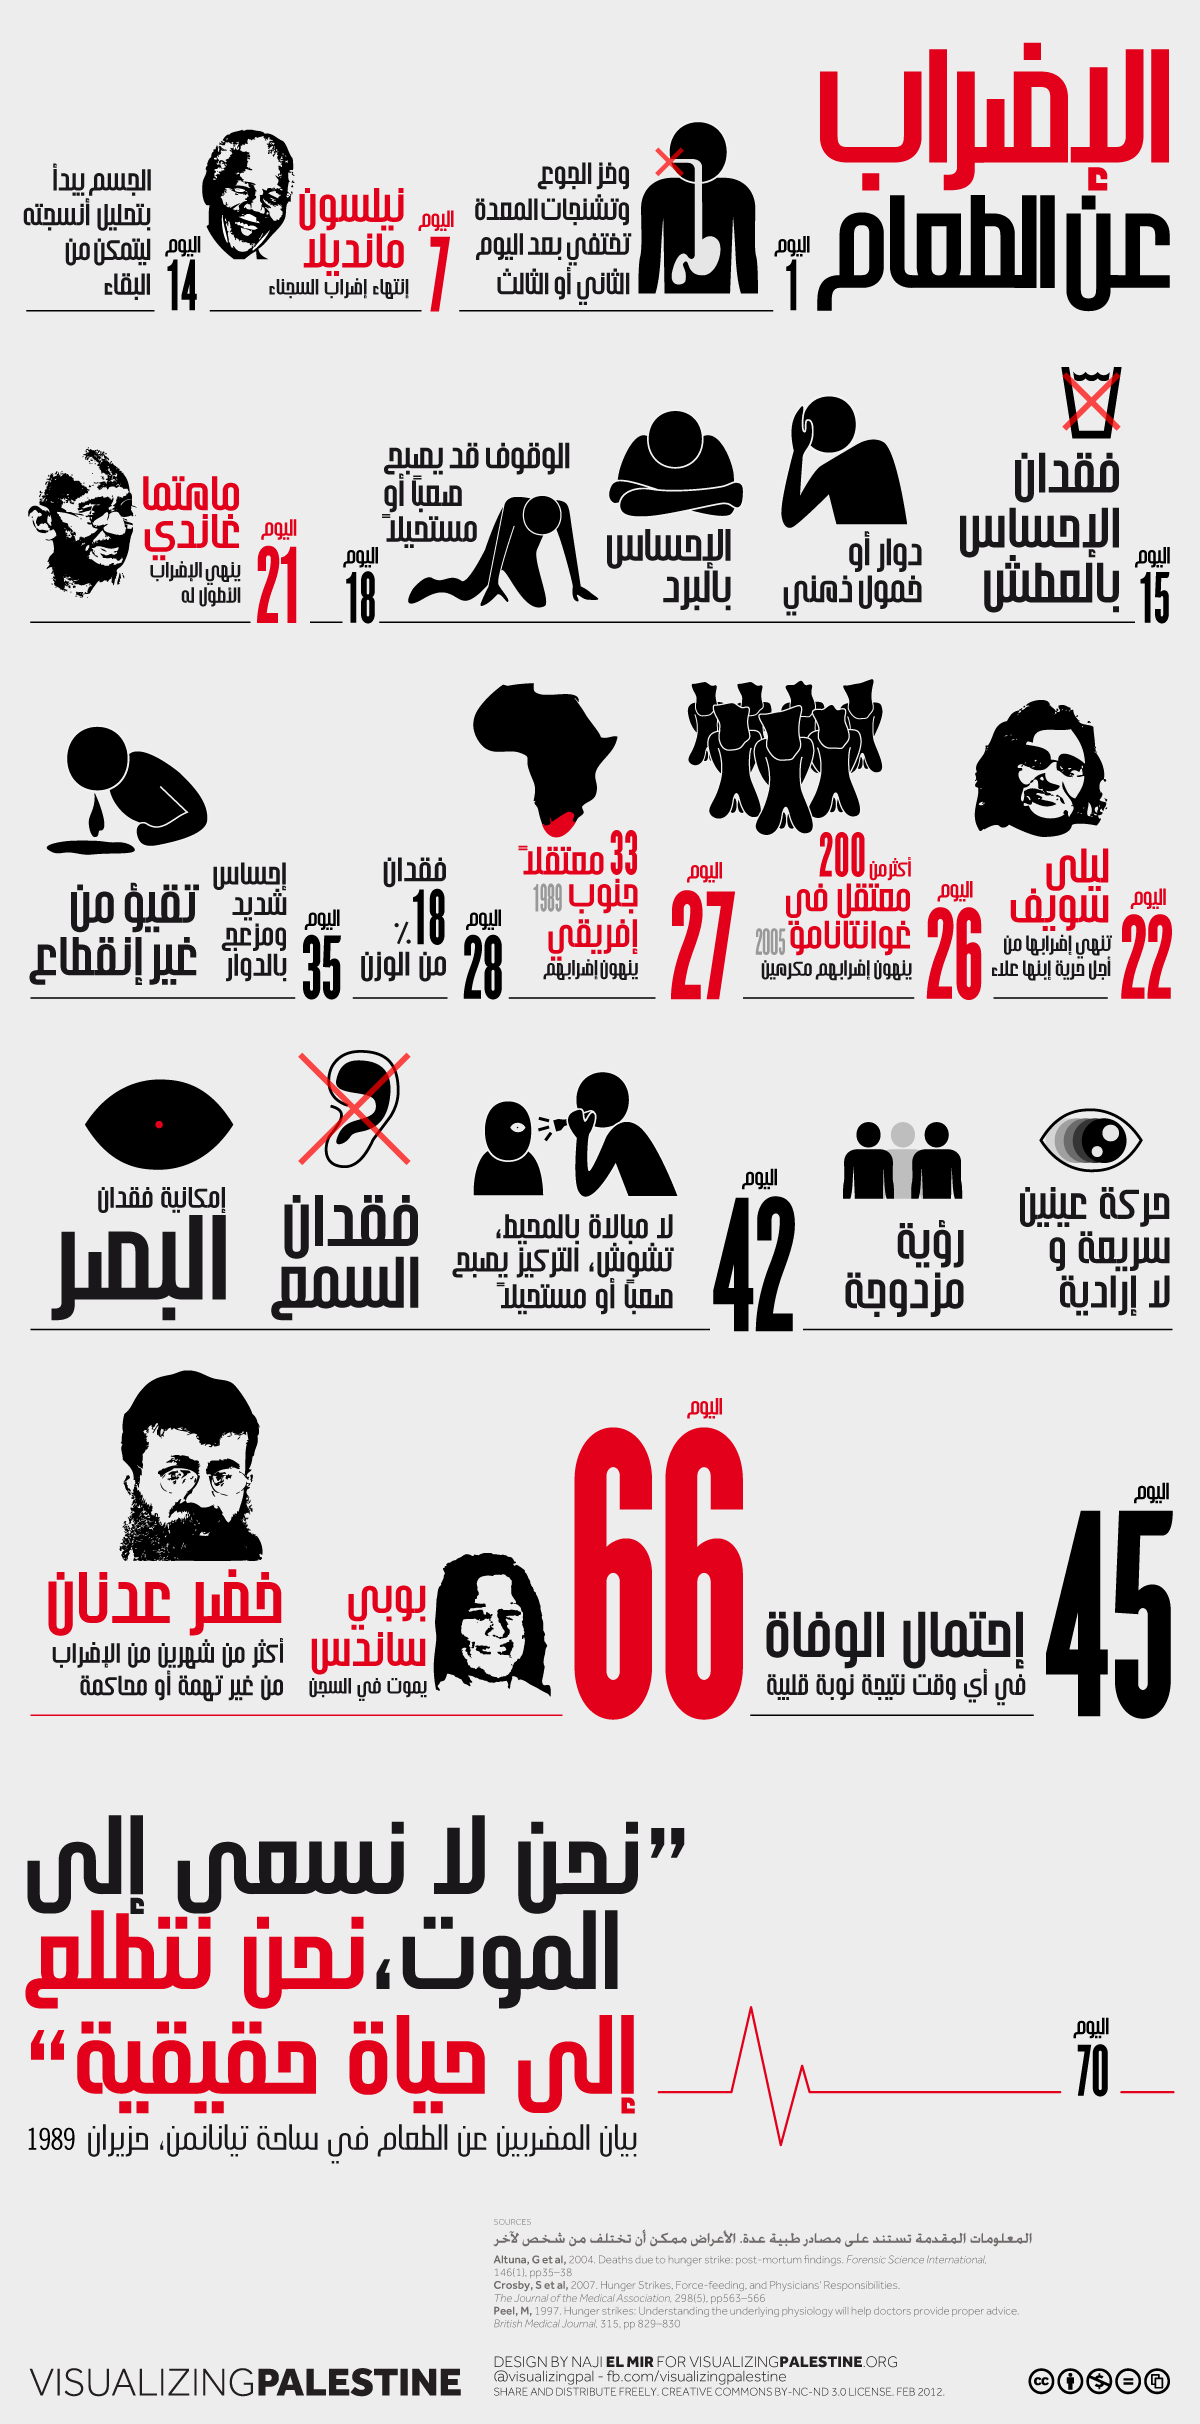 Pin By Khaled Safi On Infographic Ar انفوجرفيك عربي Incarceration Infographic Big Picture